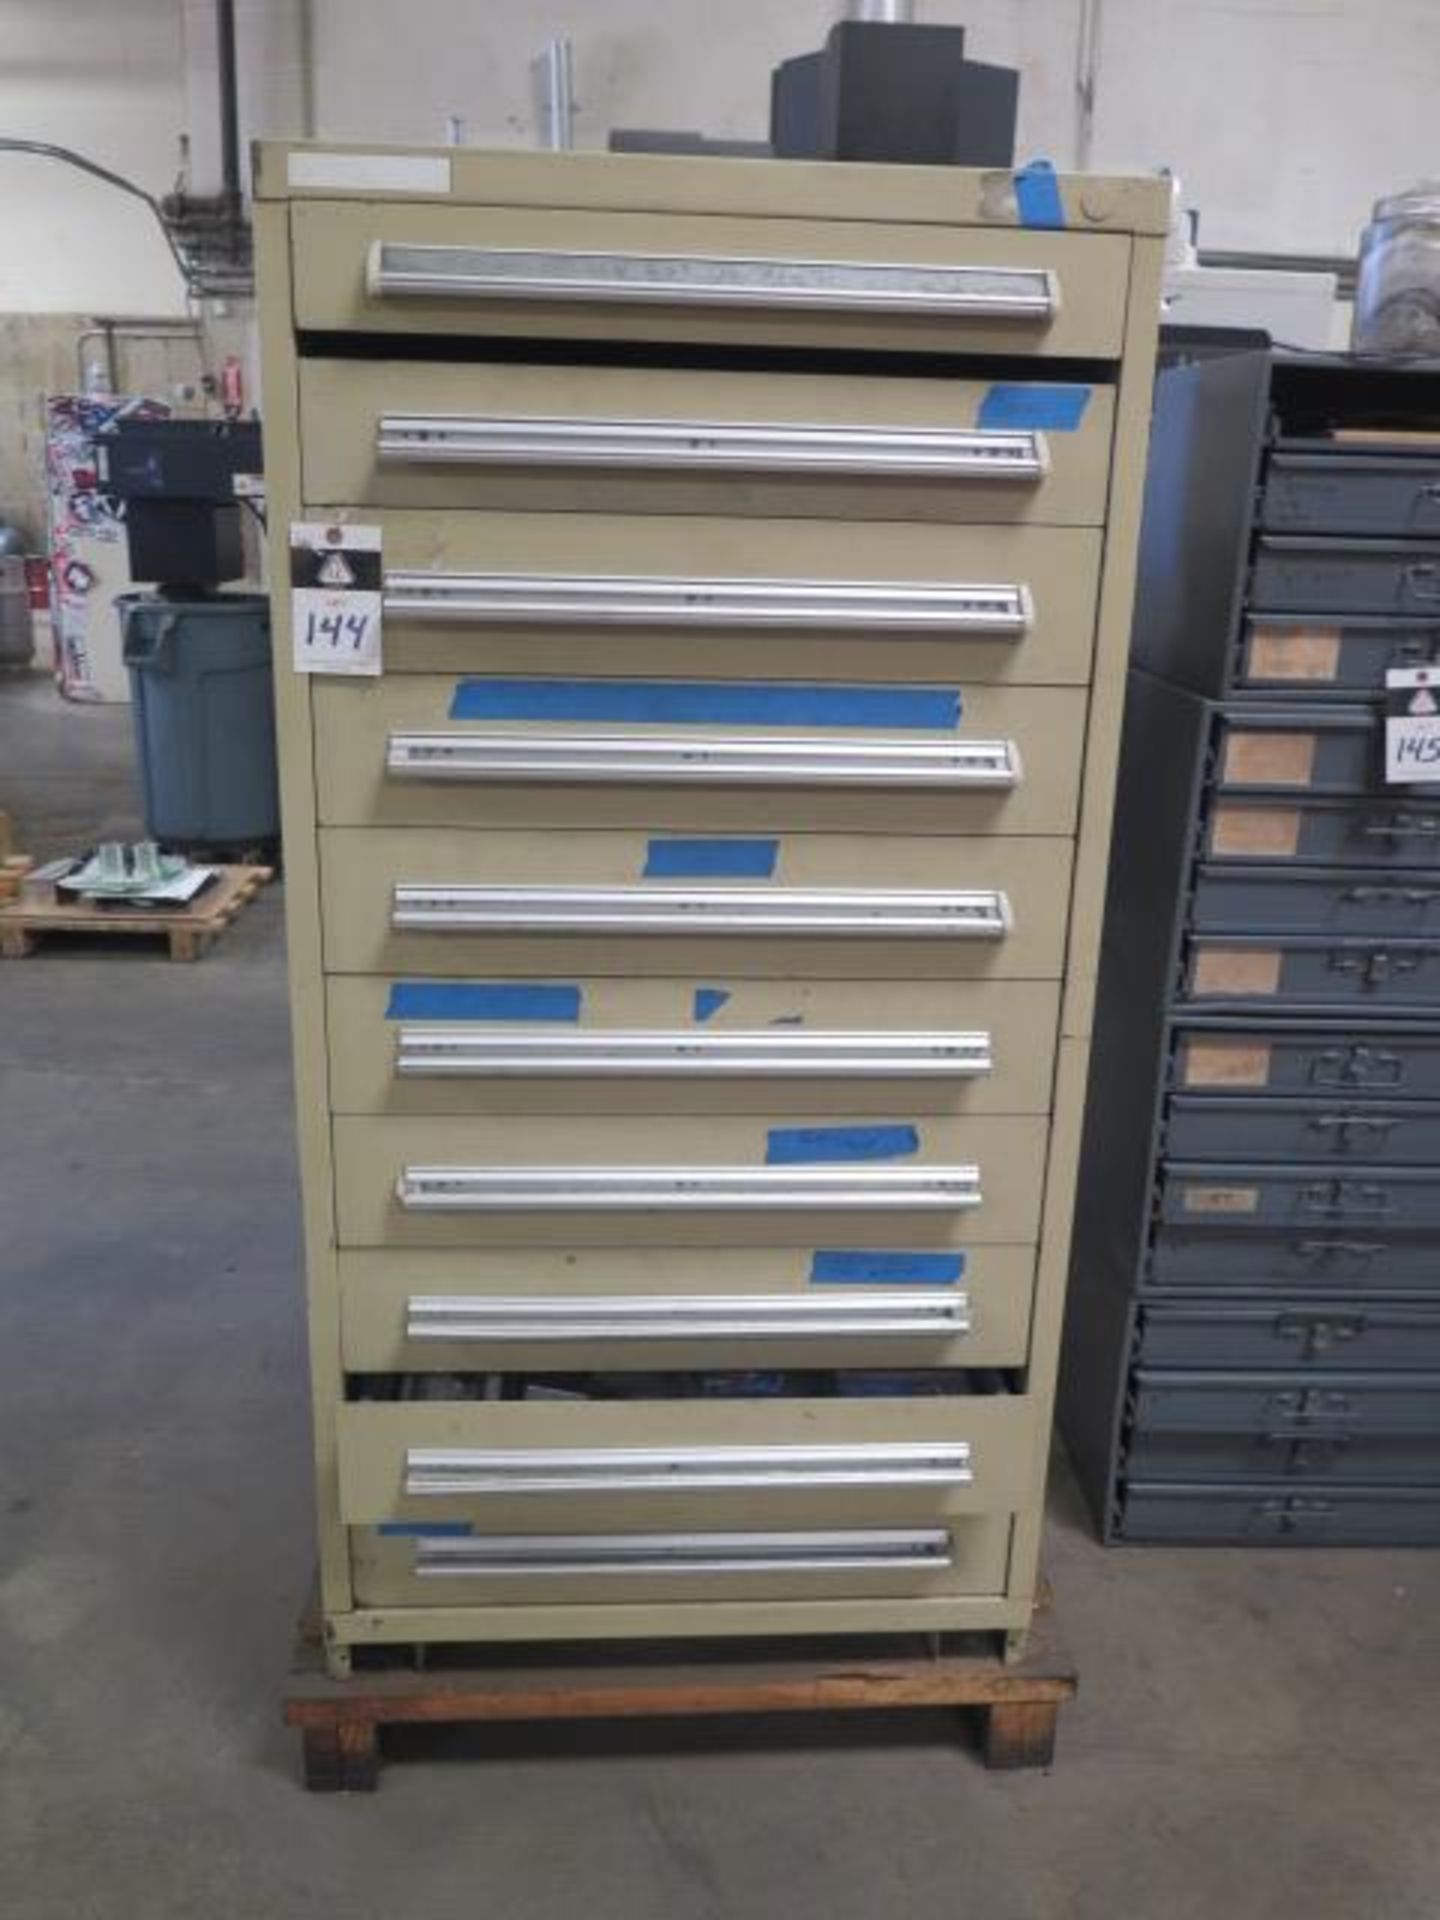 10-Drawer Tooling Cabinet w/ Hardware (SOLD AS-IS - NO WARRANTY)